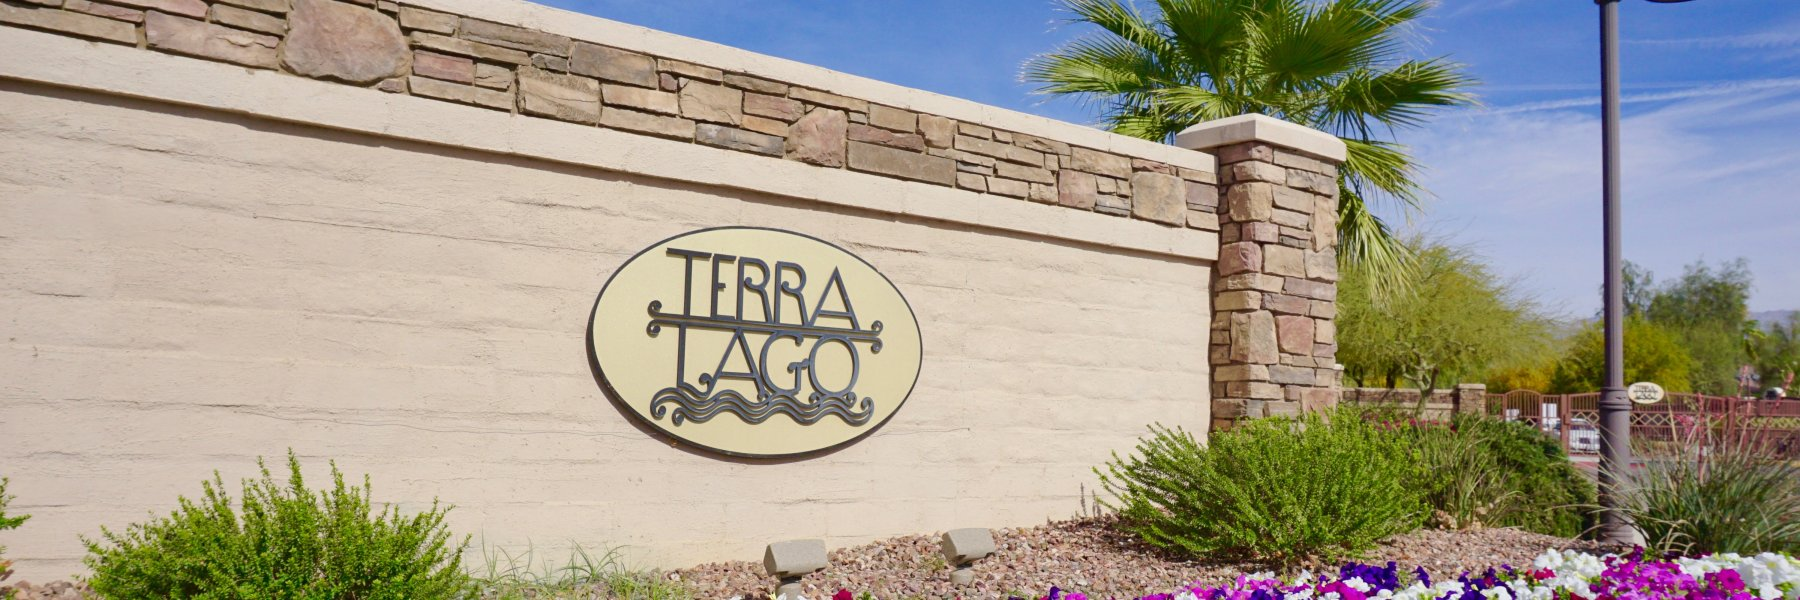 Terra Lago is a community of homes in Indio California